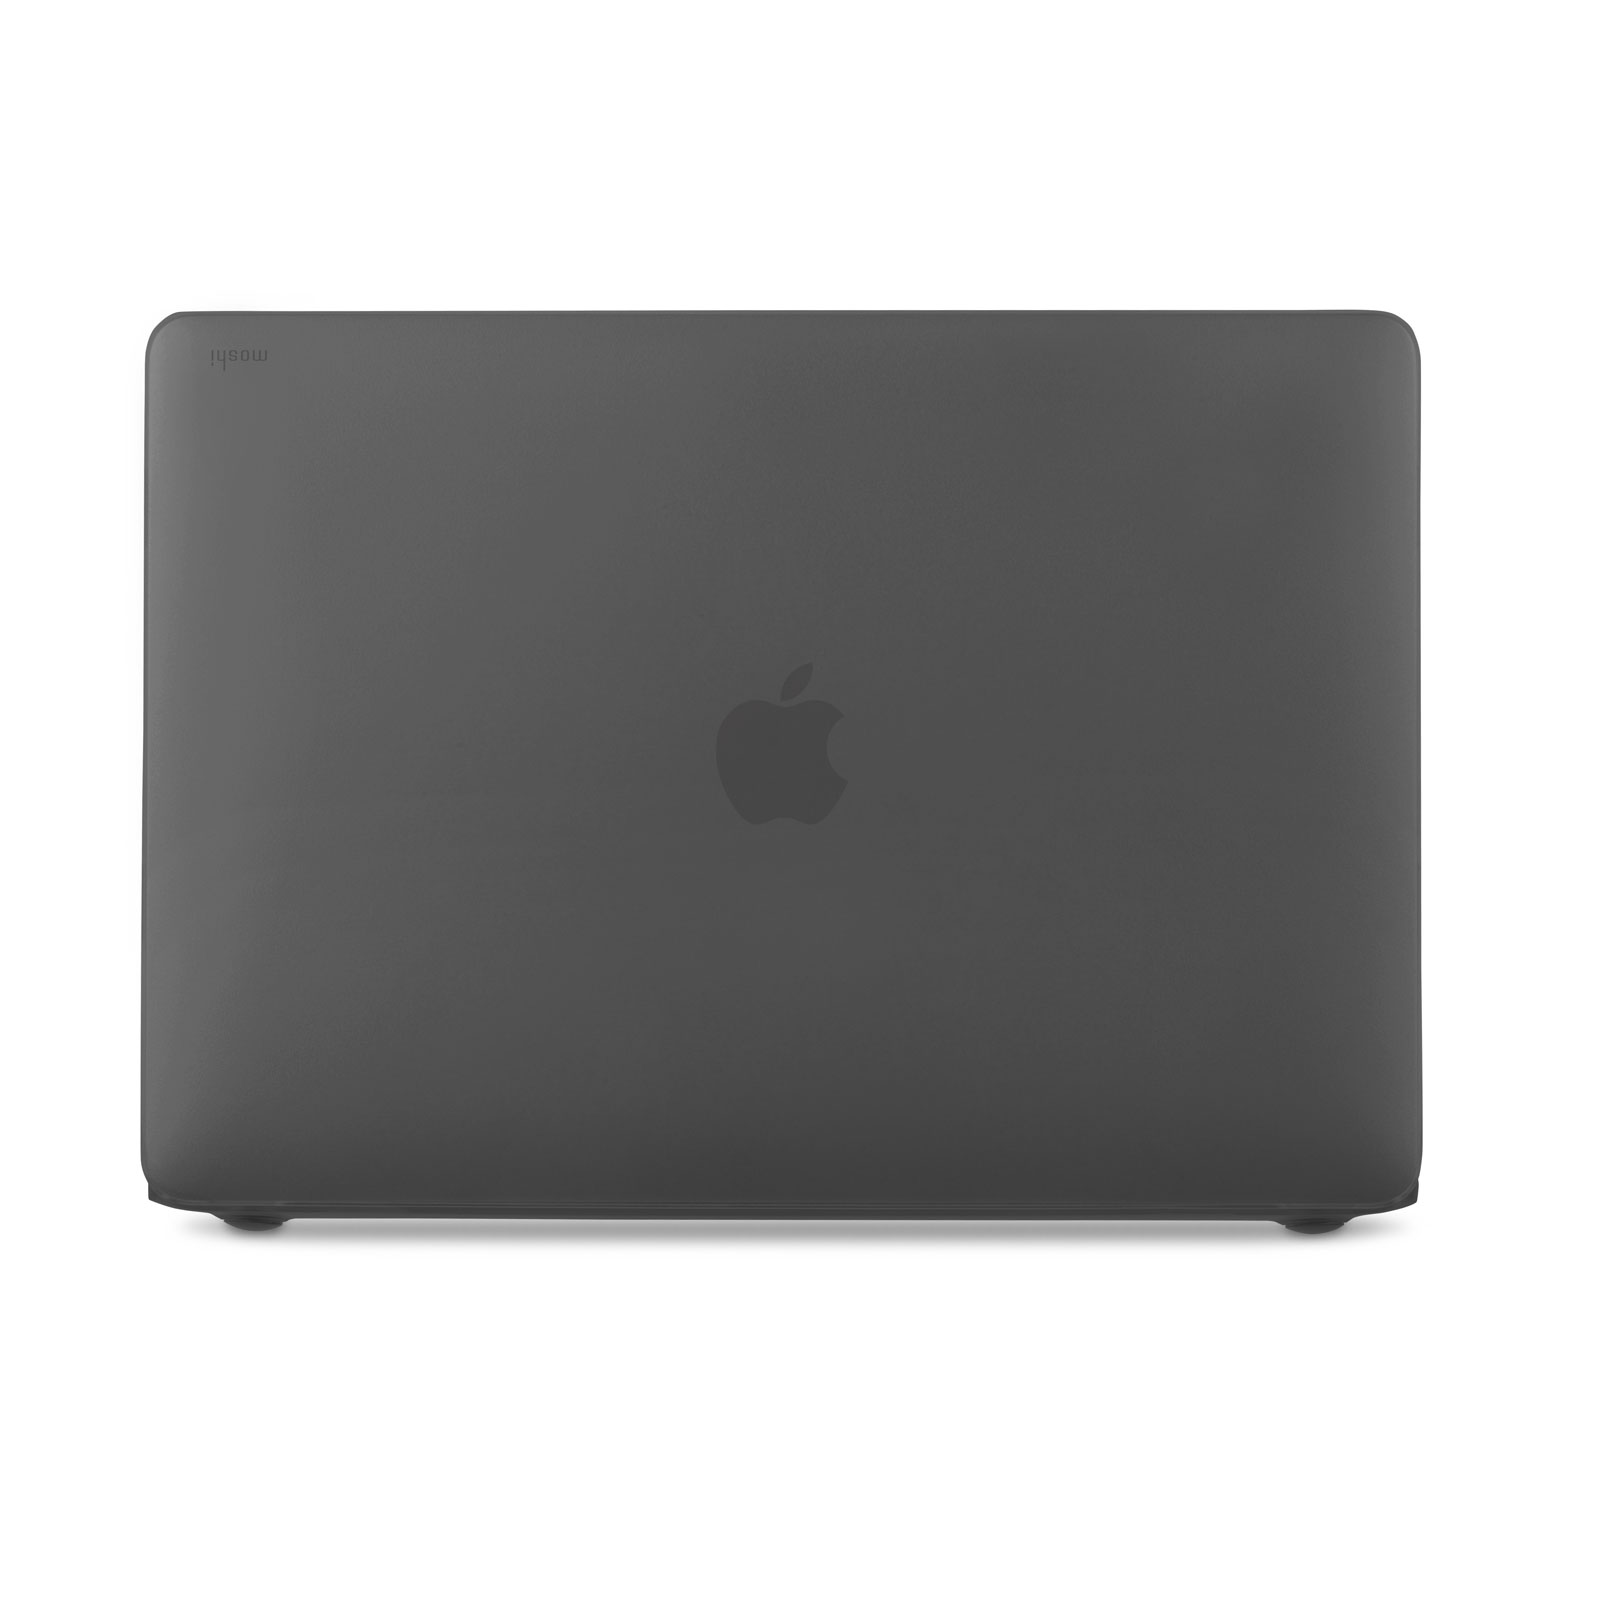 Moshi iGlaze Hardshell Case for 13-inch MacBook Pro